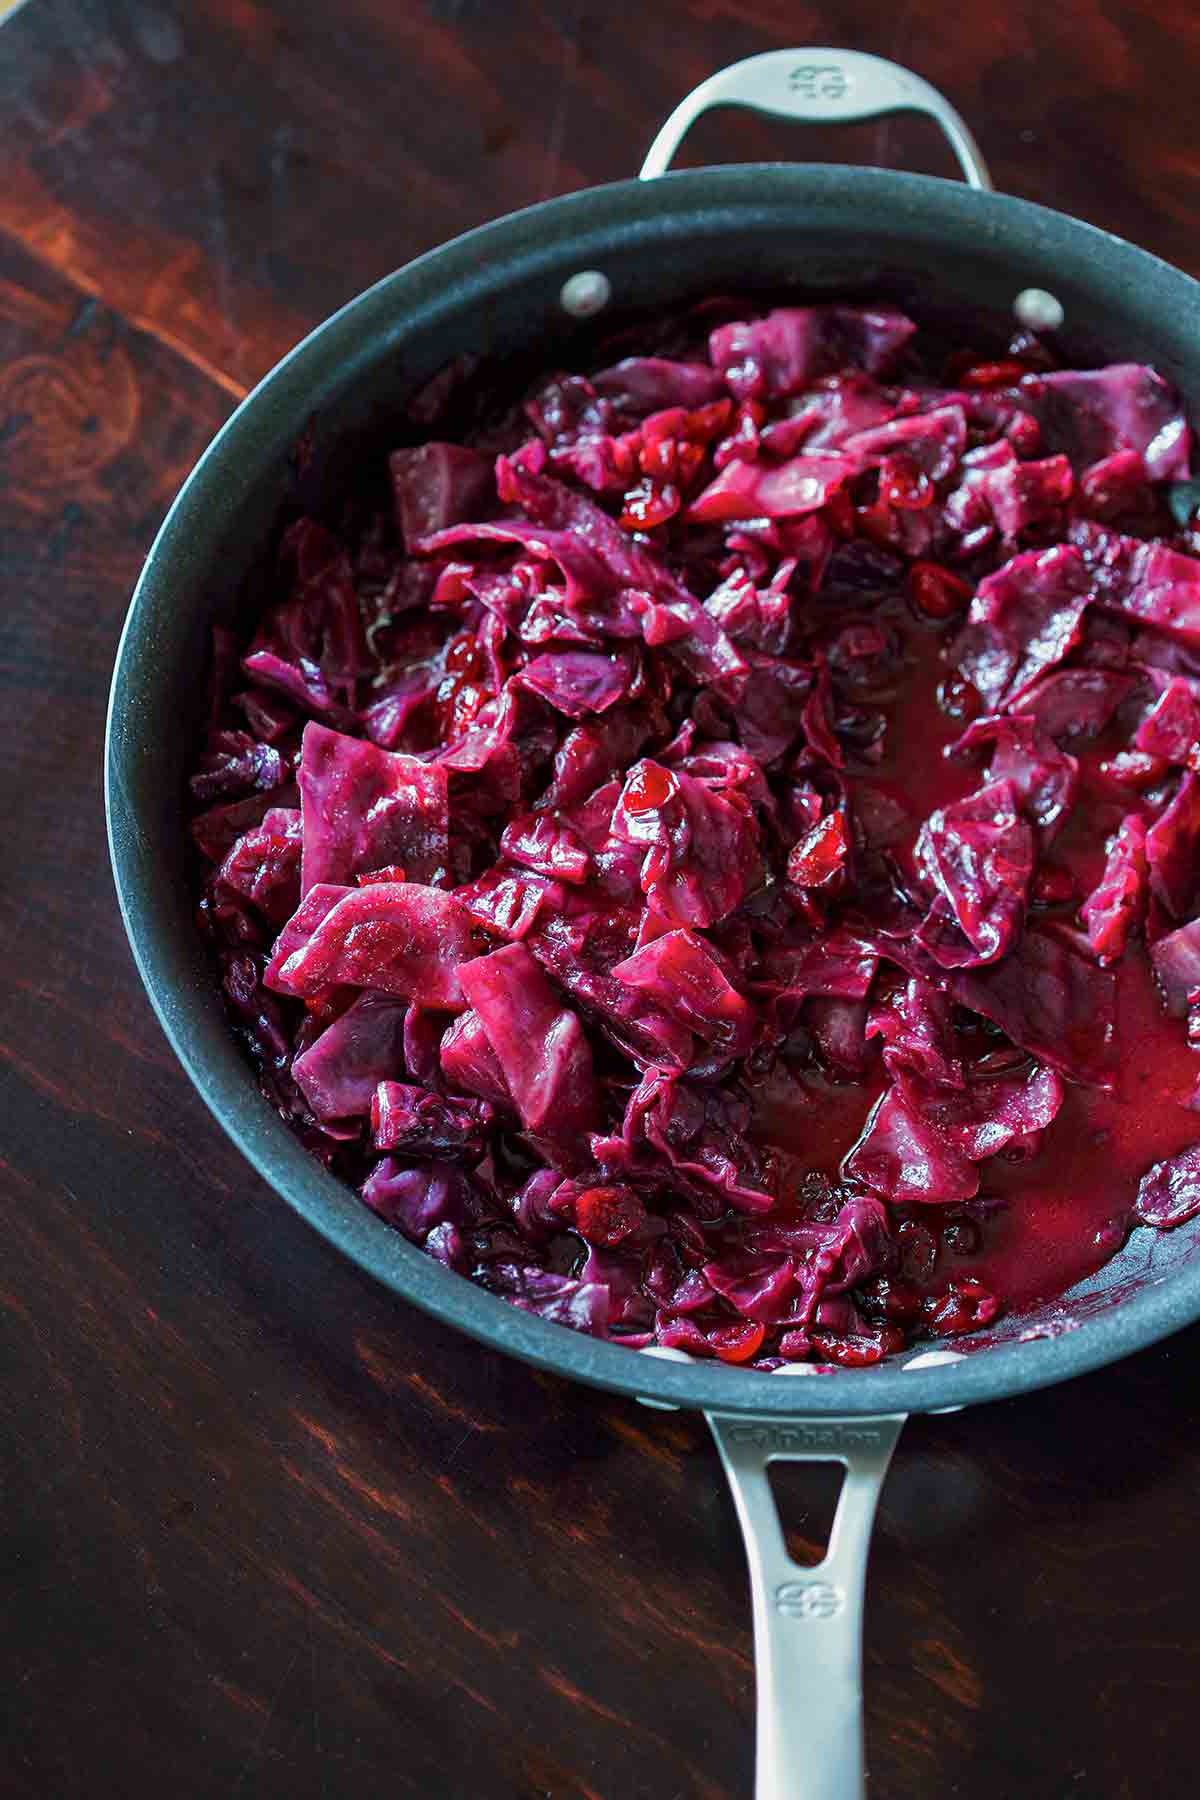 A Calphalon skillet filled with braised red cabbage with cranberries.